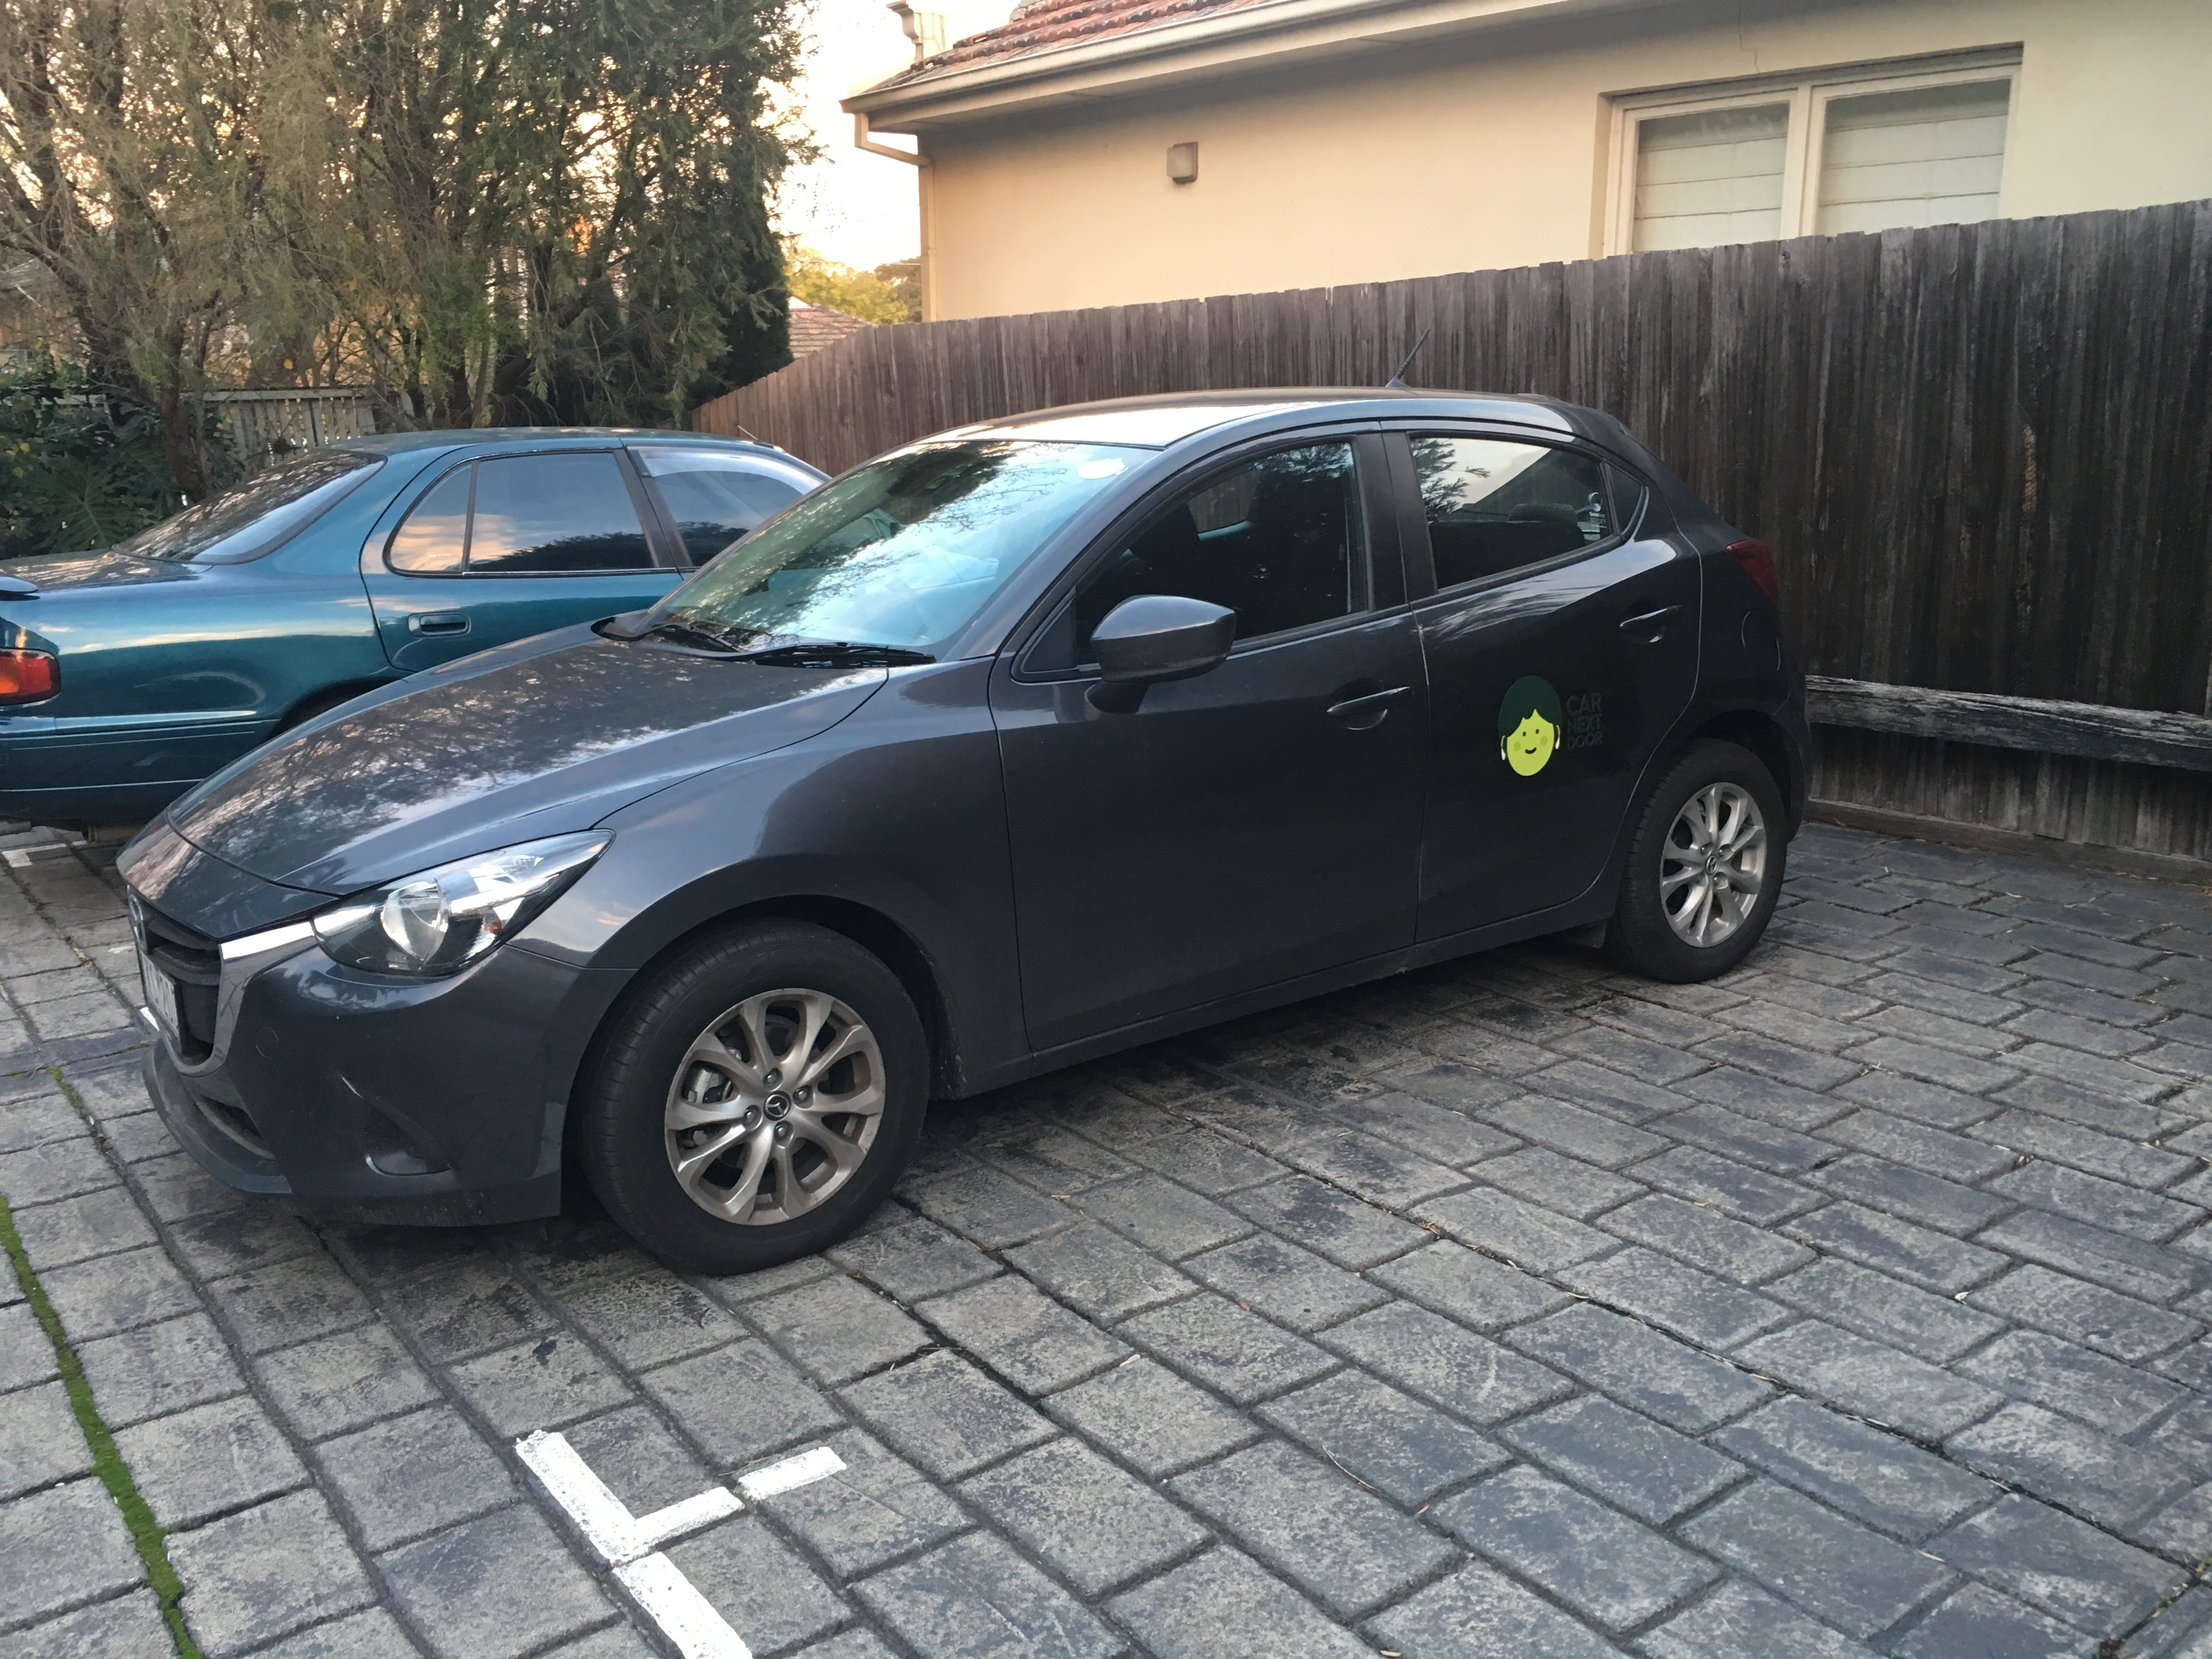 Picture of Millee's 2017 Mazda 2